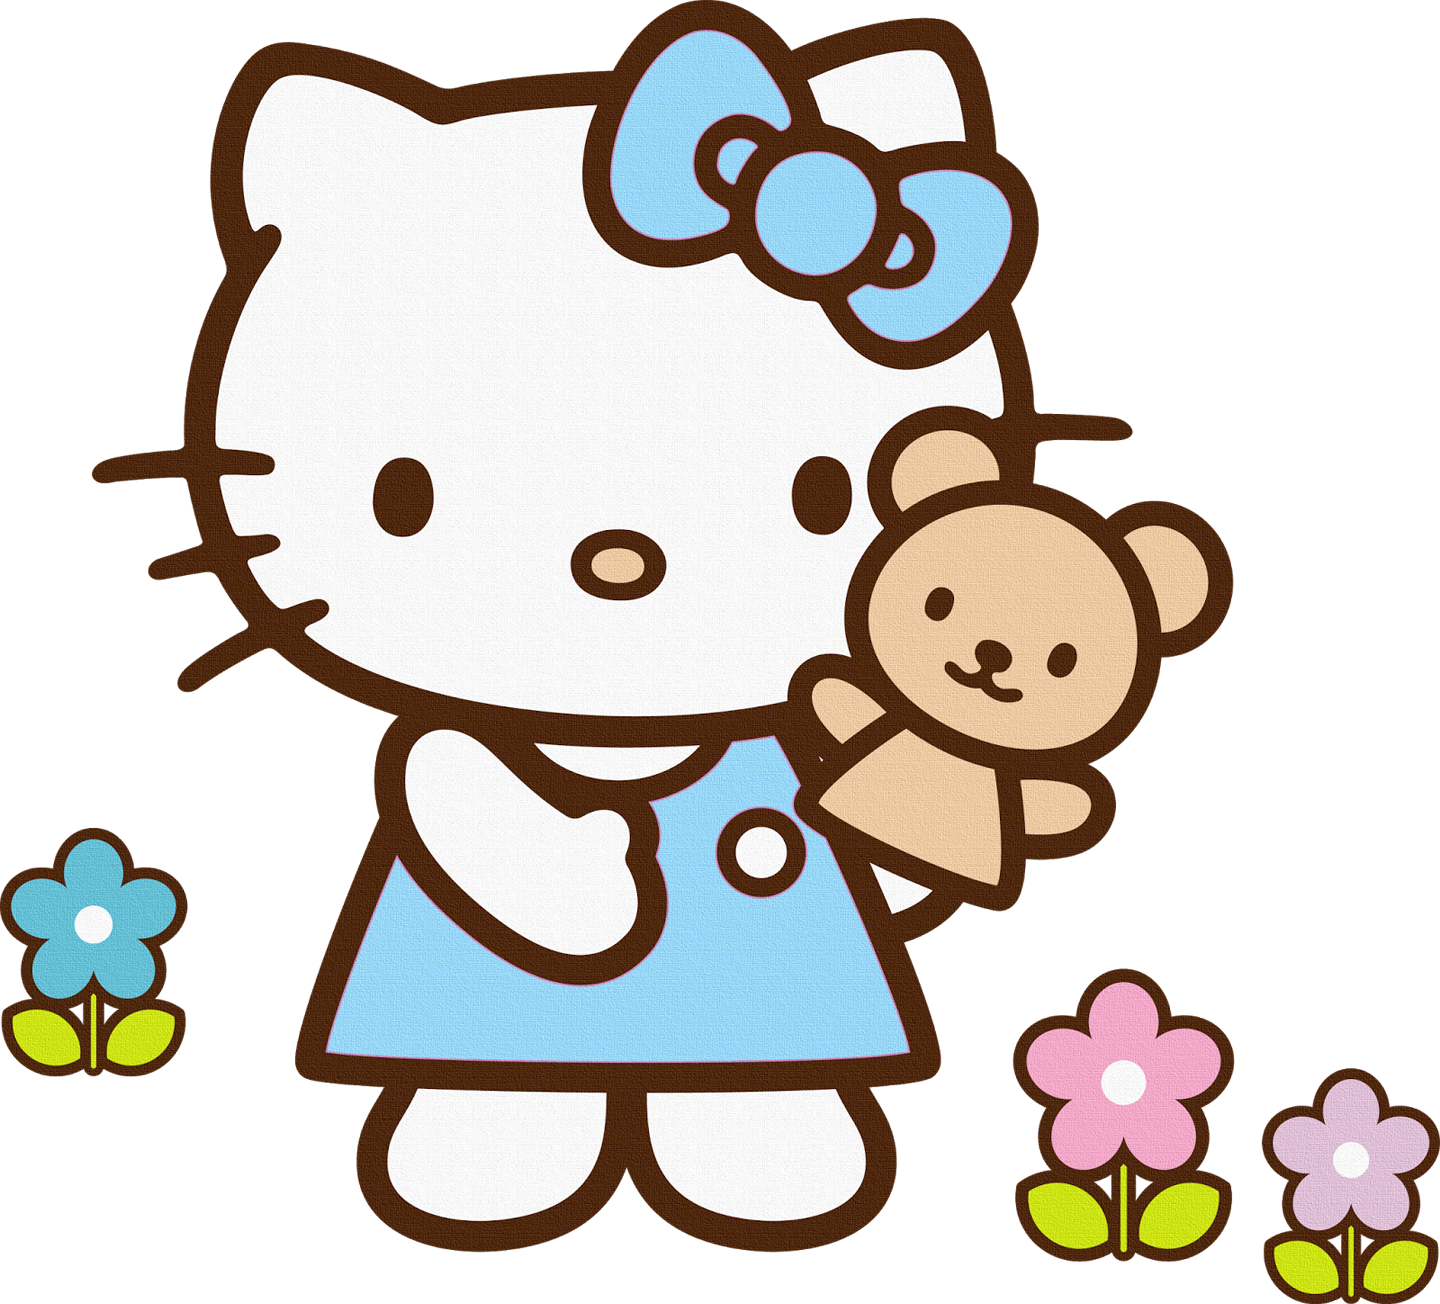 Happy birthday cat clipart image freeuse library Free Hello Kitty ClipArt No 3 | Hello Kitty & Friends | Pinterest ... image freeuse library